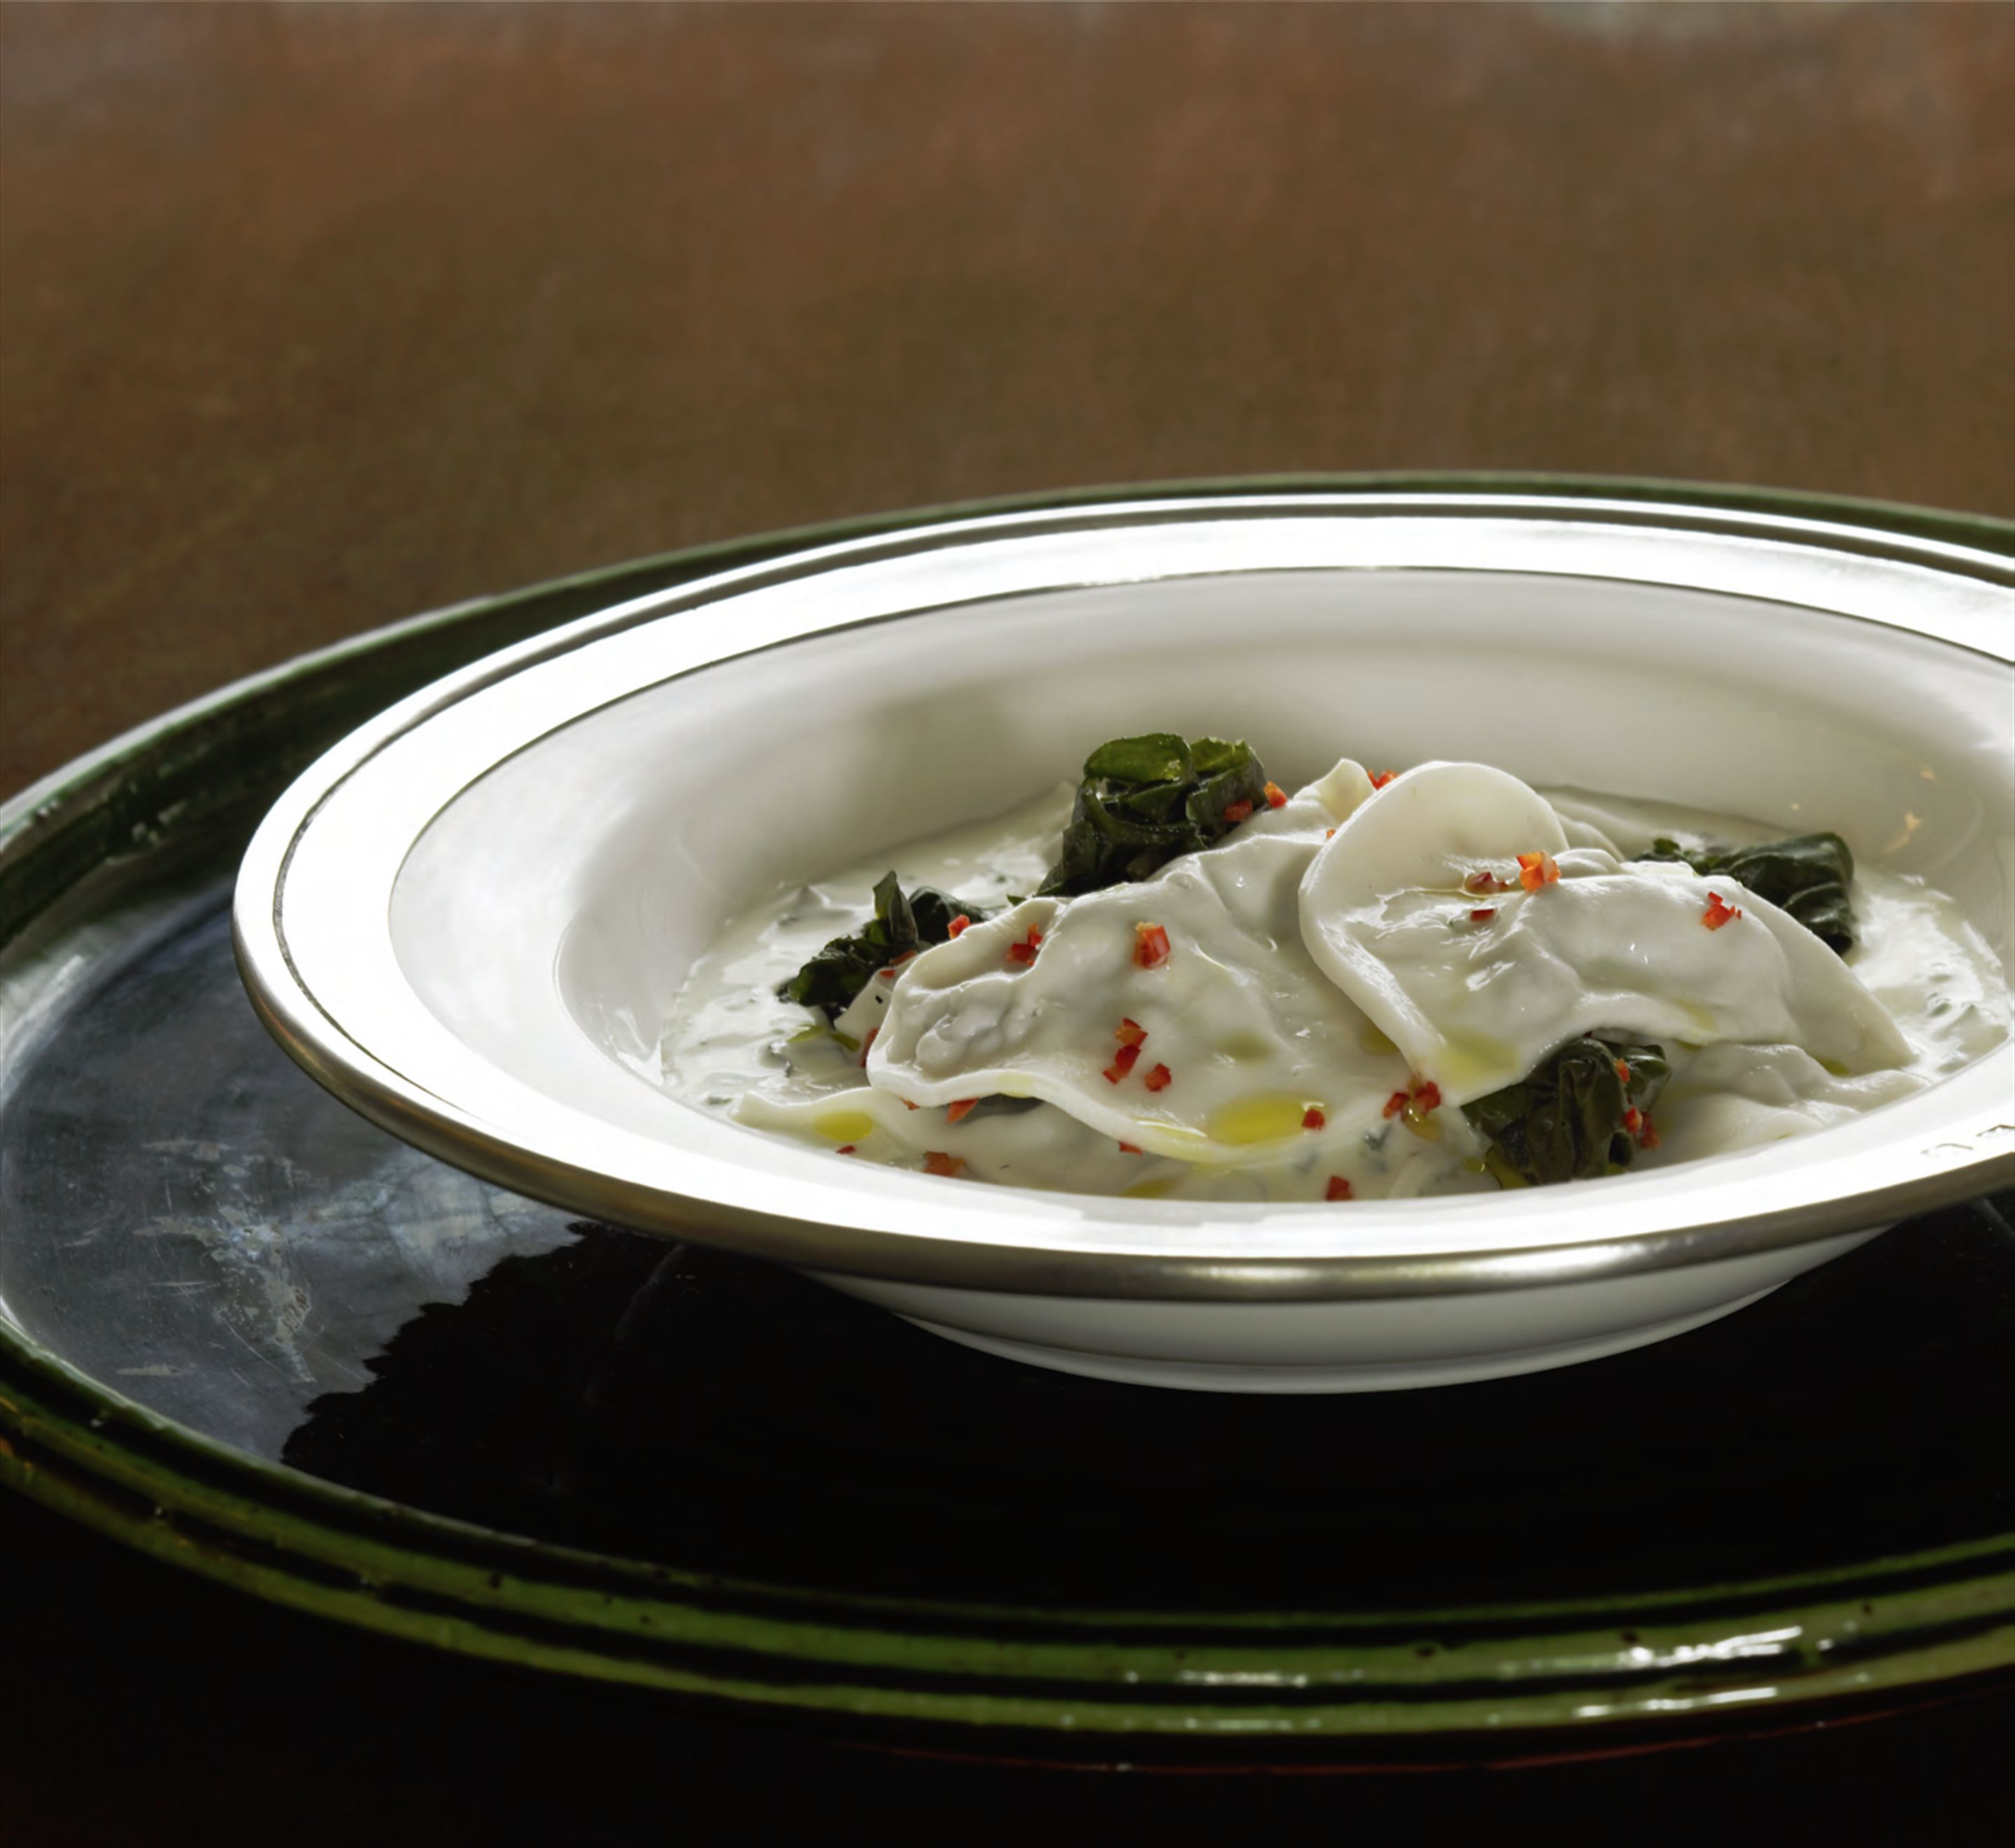 Chiche barak Lebanese-style dumplings in yoghurt soup with silverbeet